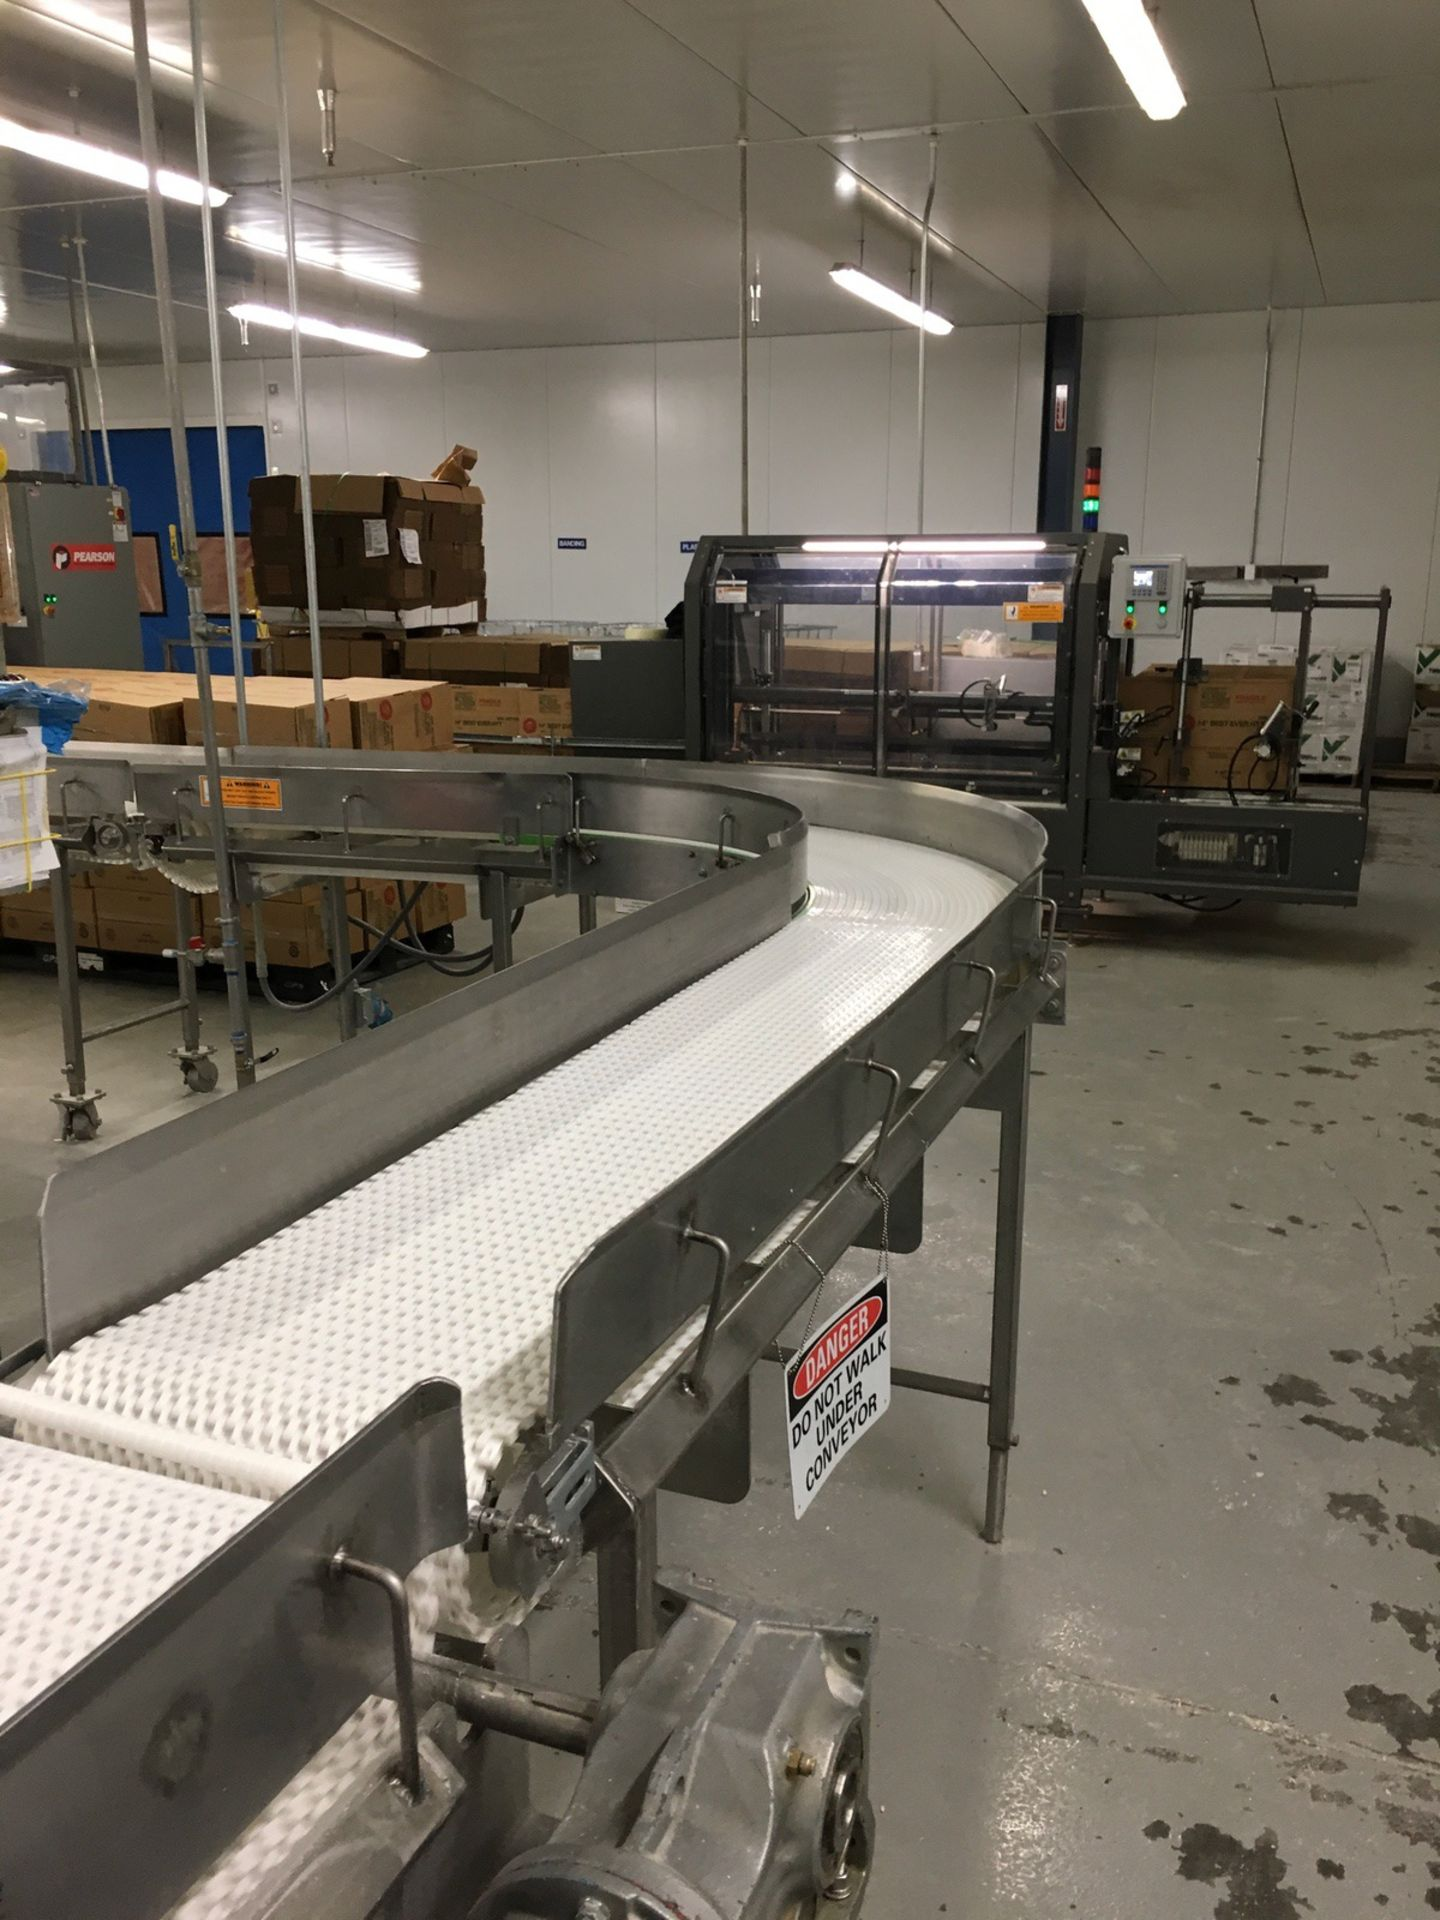 Lot 1K - 2013 Intralox Conveyors, Approx 80 ft Overall Length, 15.5in W Belt, ( | Insp by Appt | Rig Fee: 750